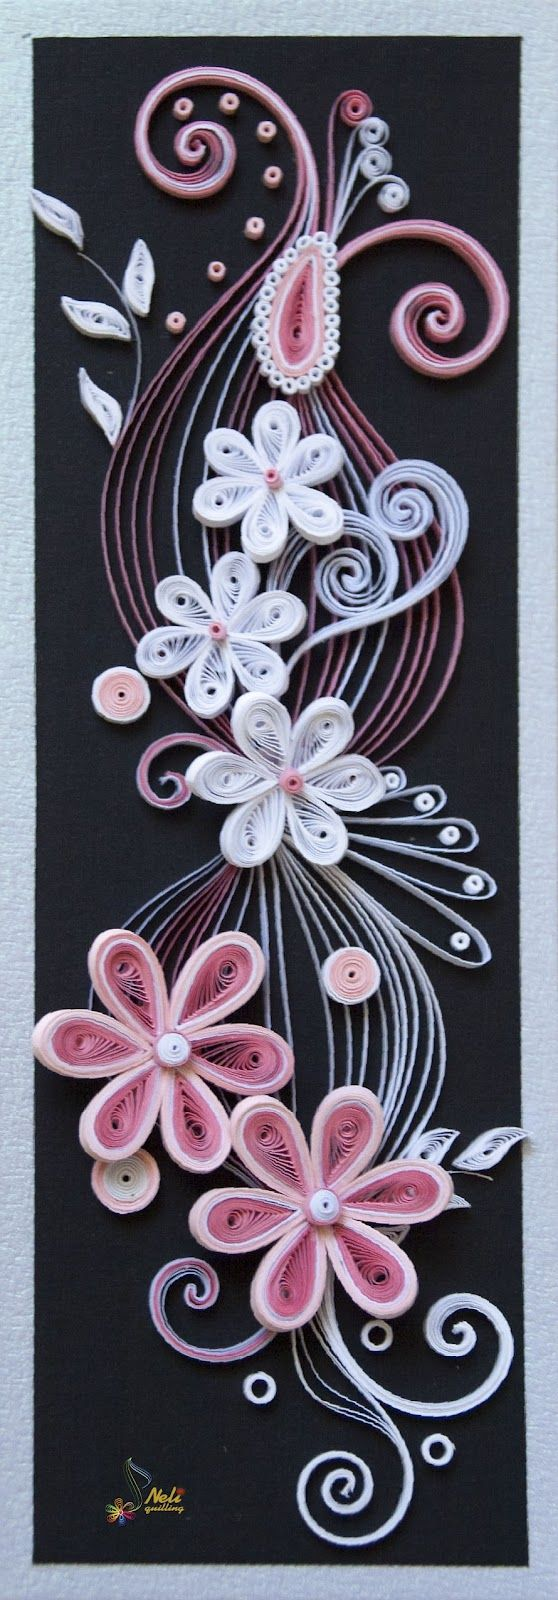 gorgeous quilling design